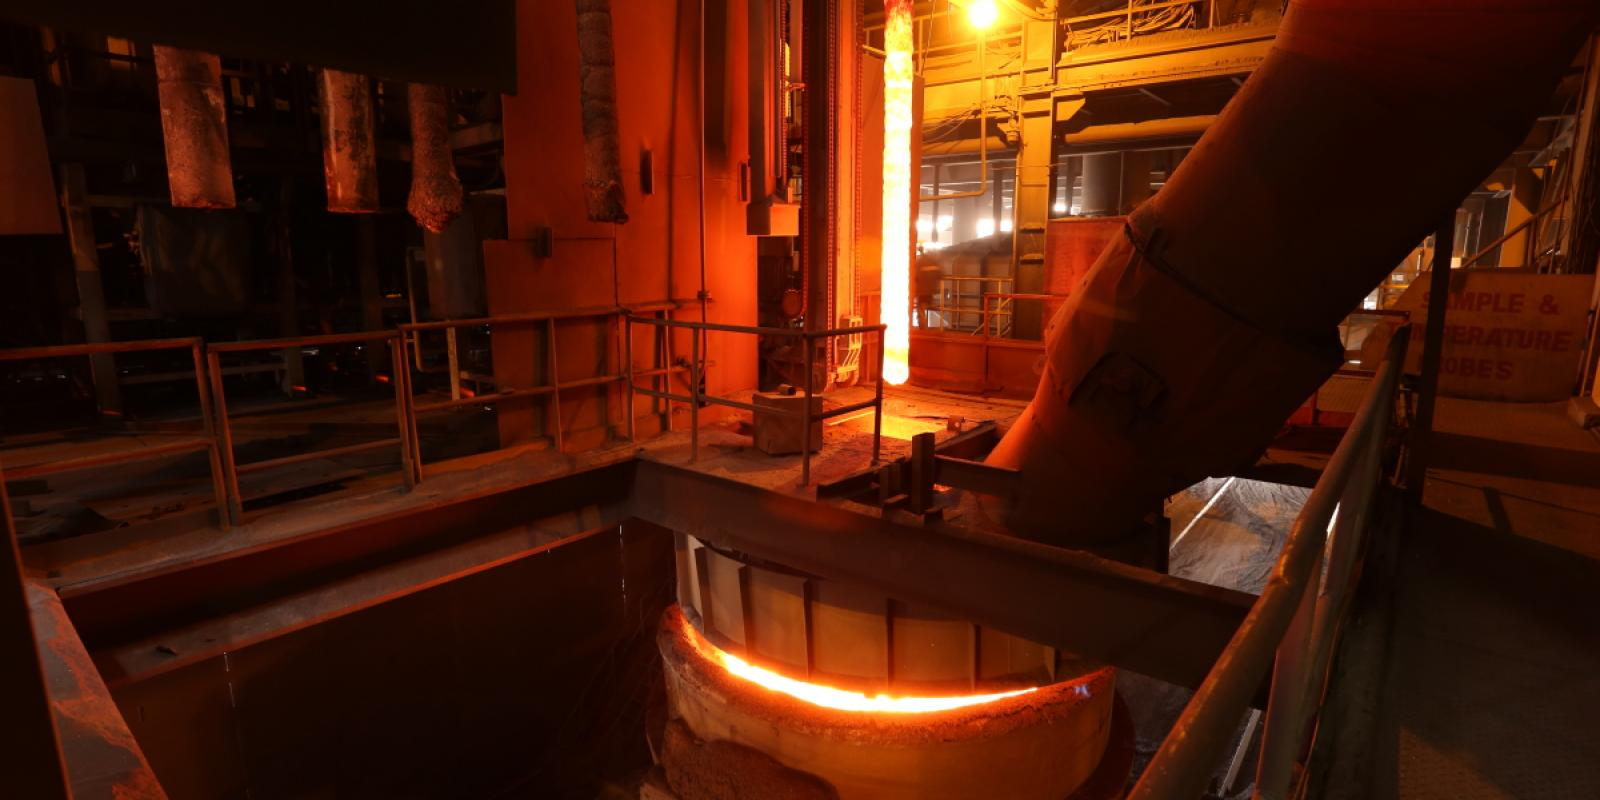 Steelmaking - Secondary metallurgy